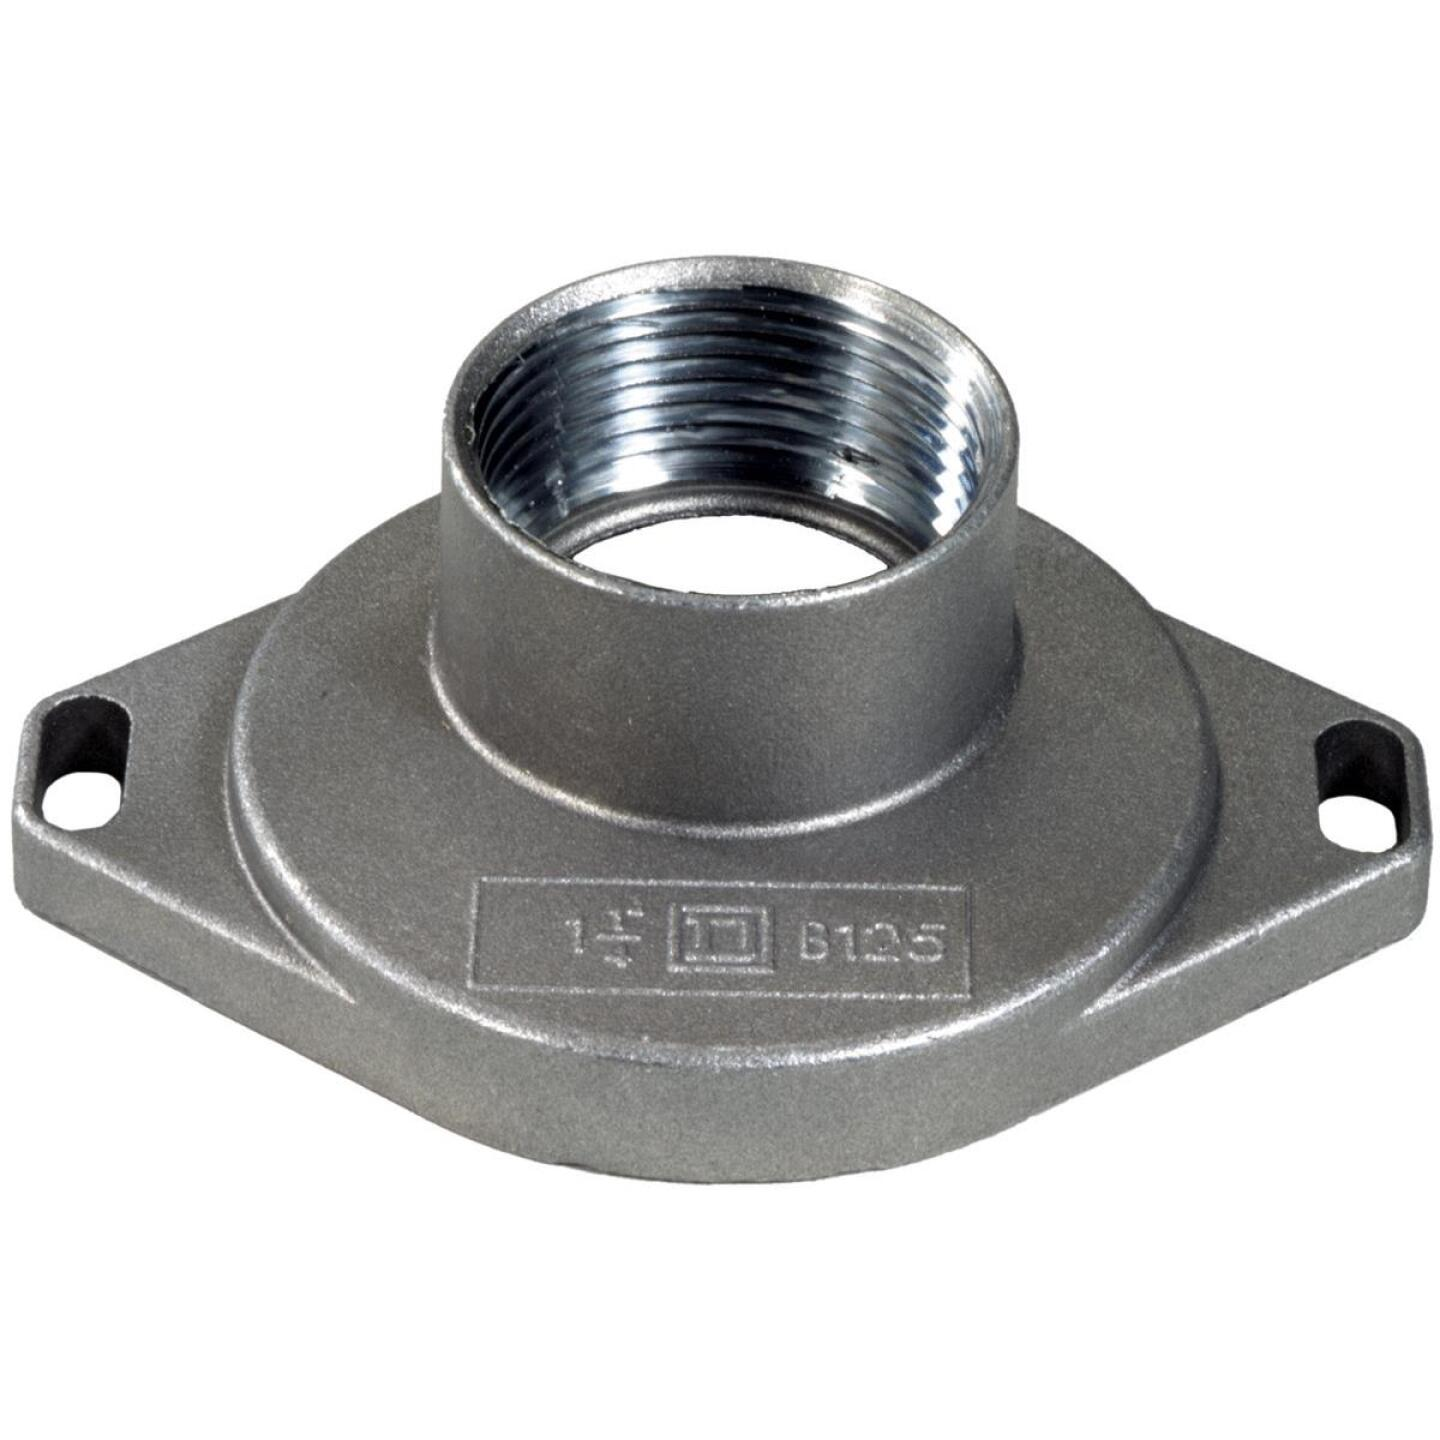 Square D 1-1/4 In. RB Bolt-On Conduit Hub Image 1